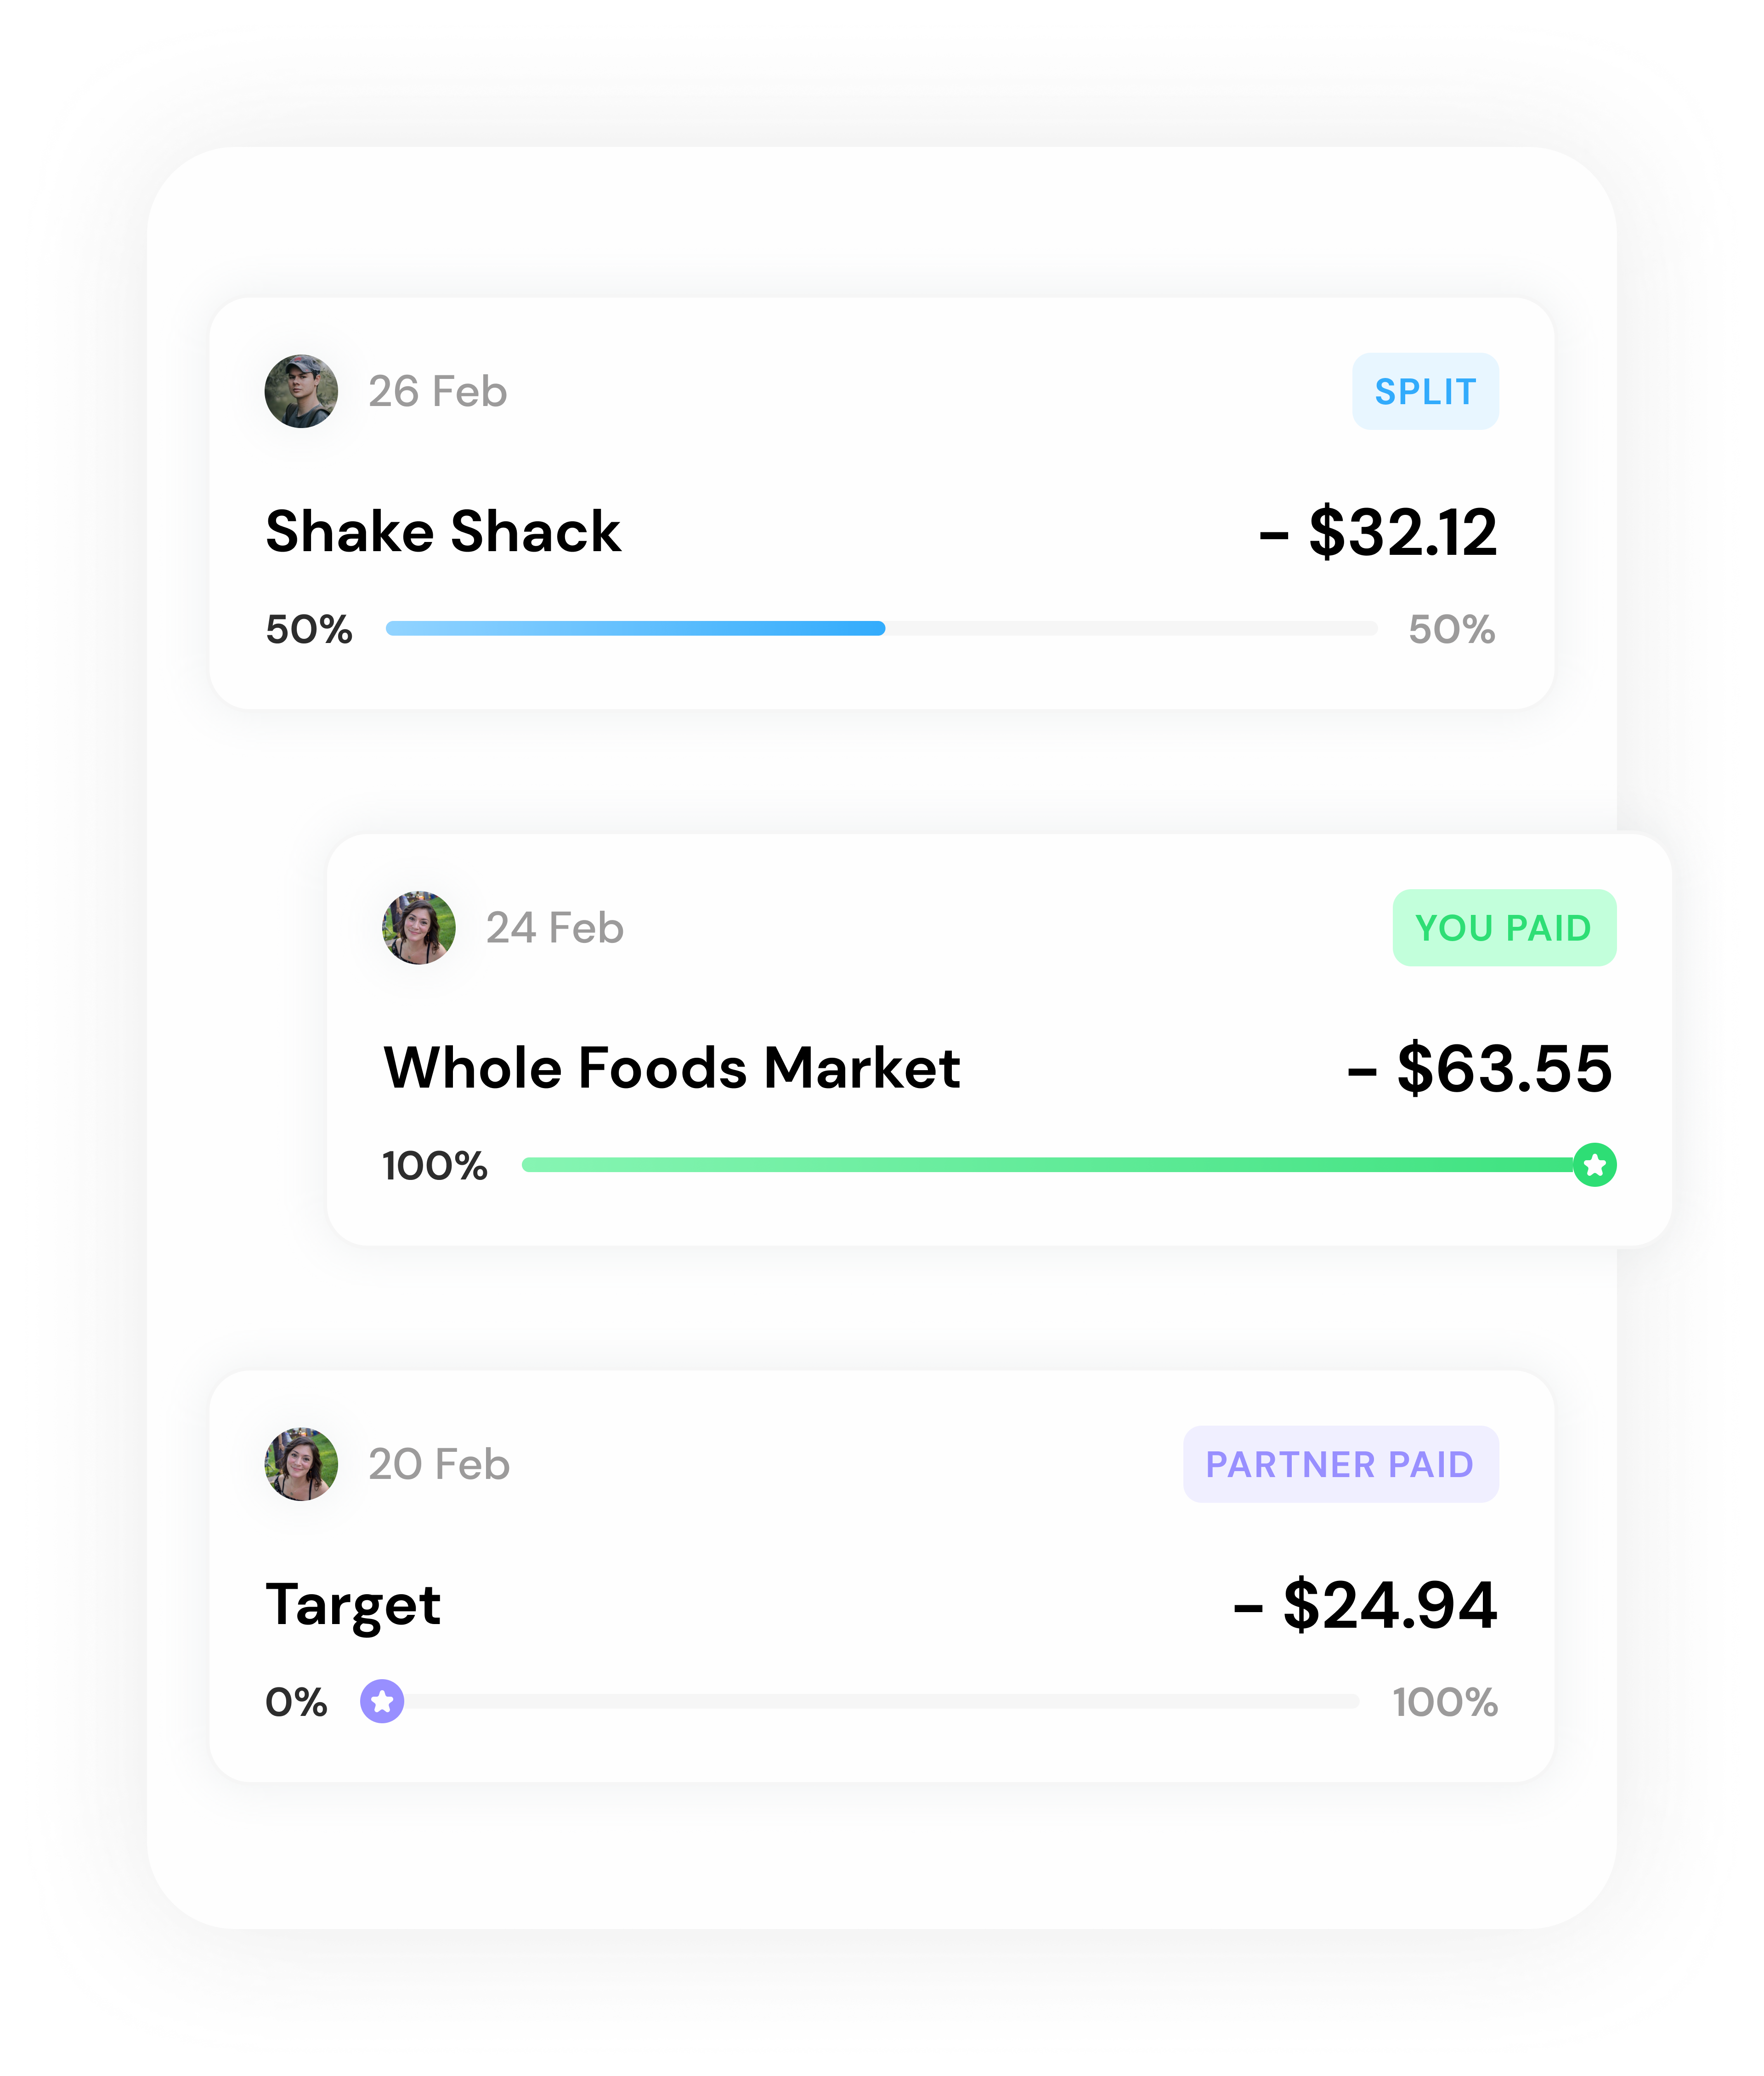 Ivella transactions screen with examples from Shake Shack, Whole Foods Market, and Target.